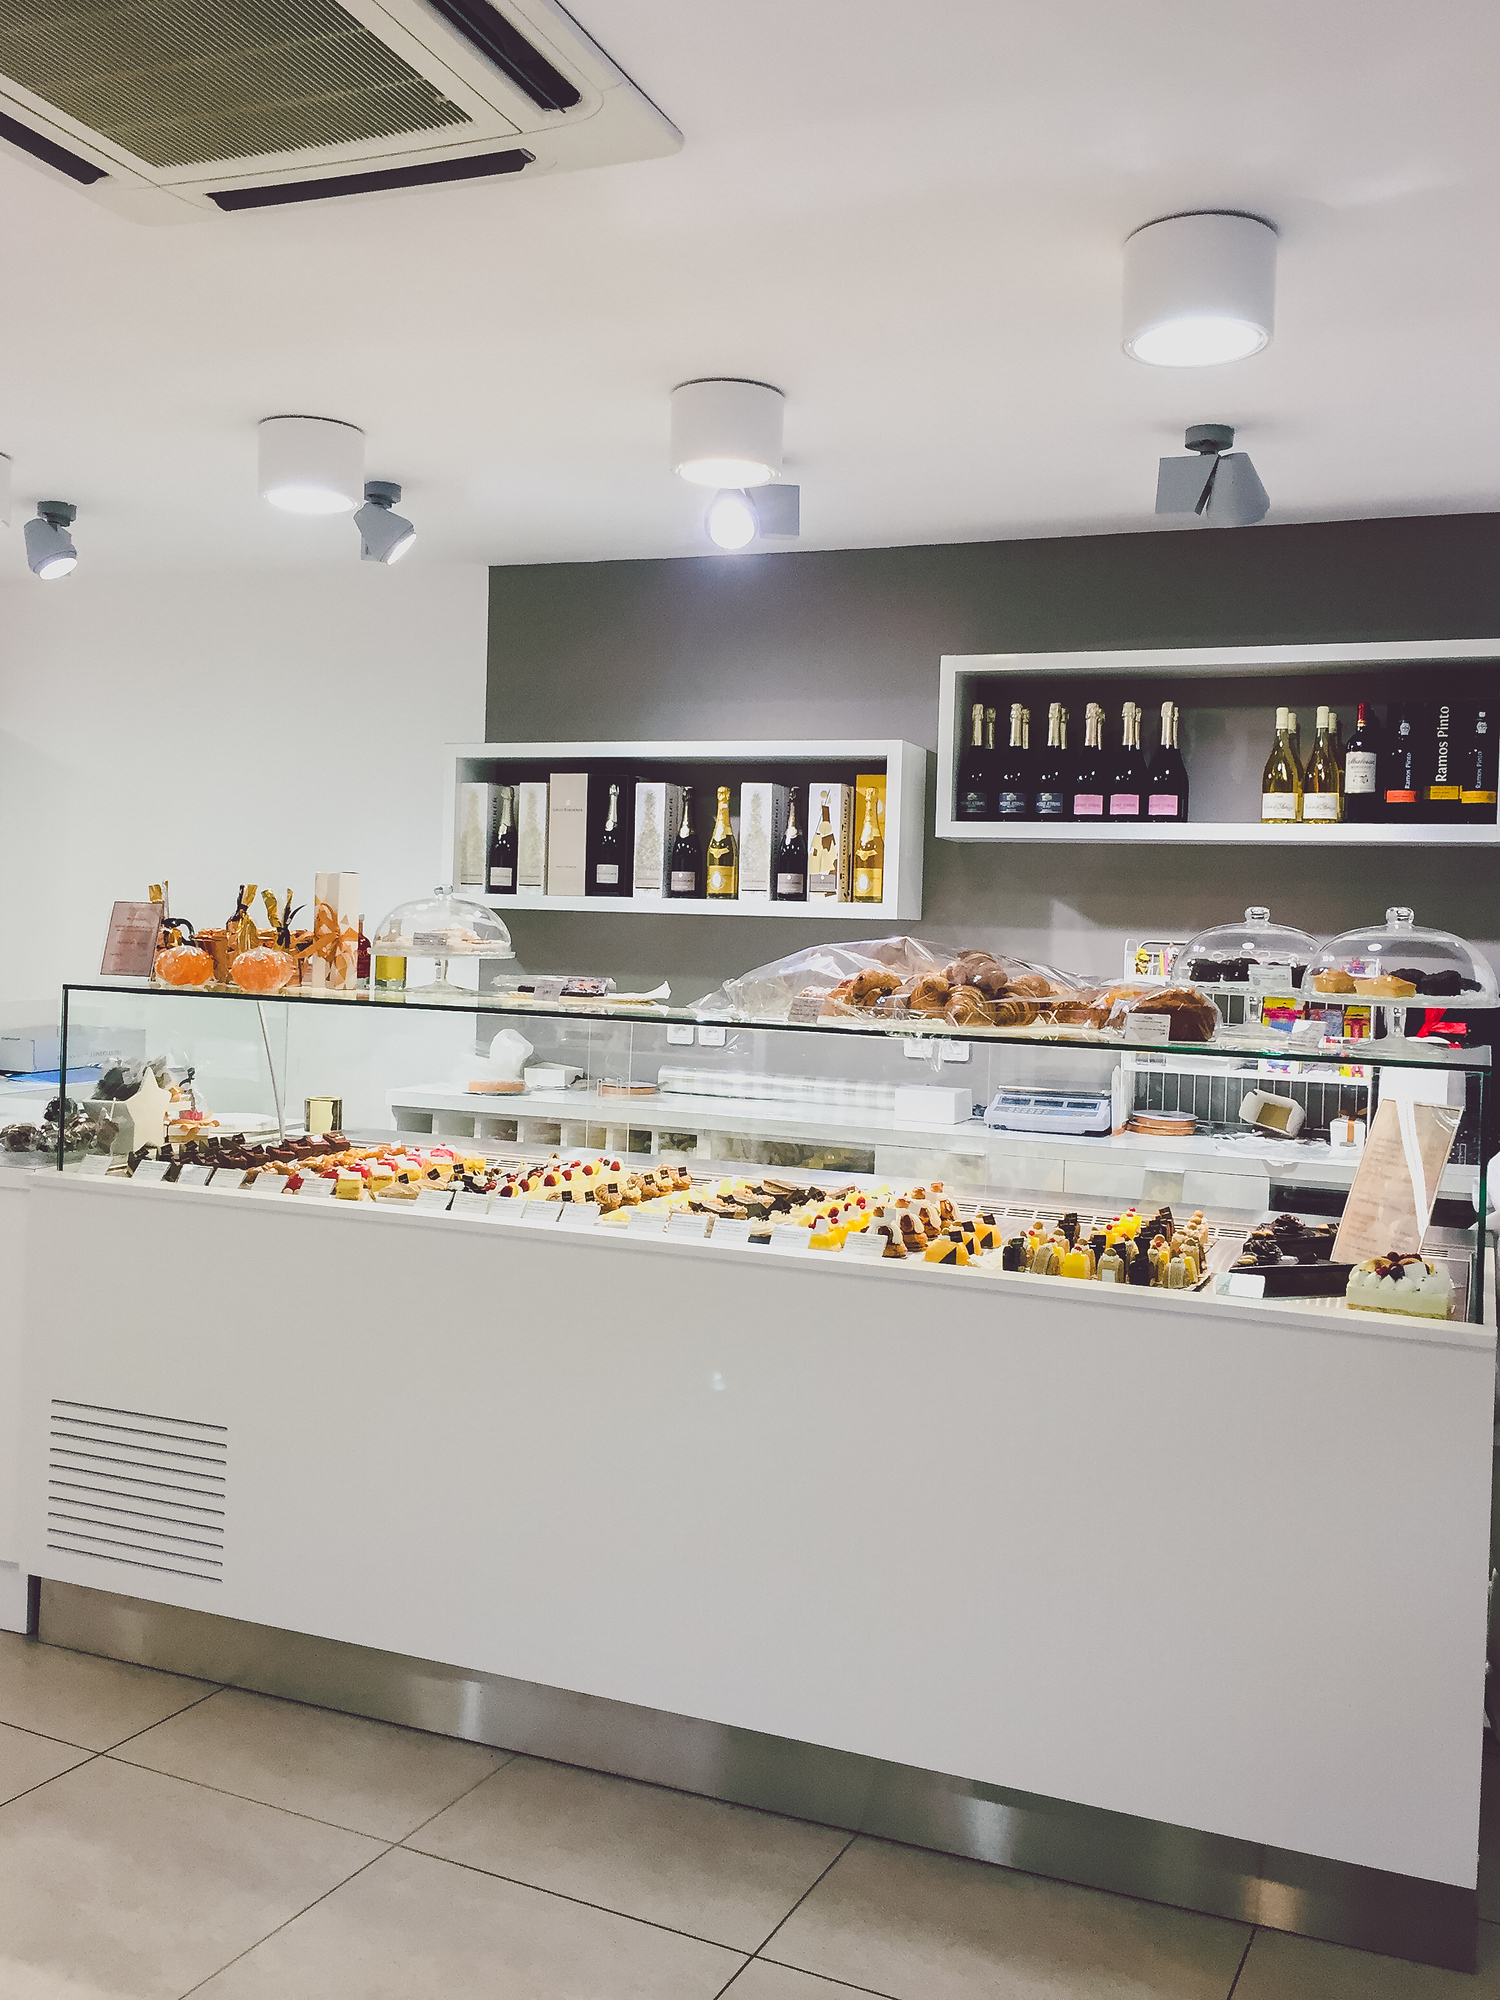 Weibel is one of the best bakeries in Aix en Provence, discover what other patisseries in Aix en Provence you must visit!